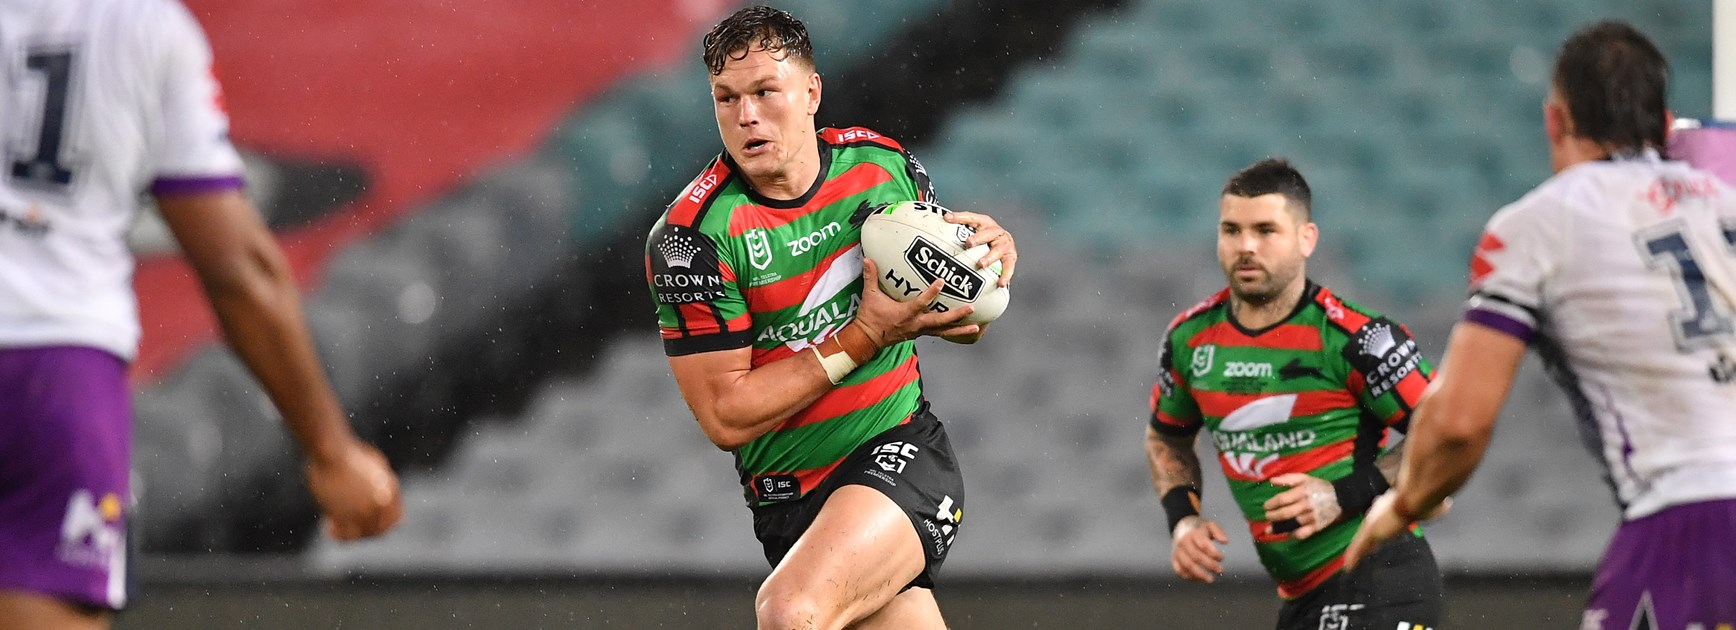 Knight moves: How a teen tennis prodigy became feared NRL enforcer